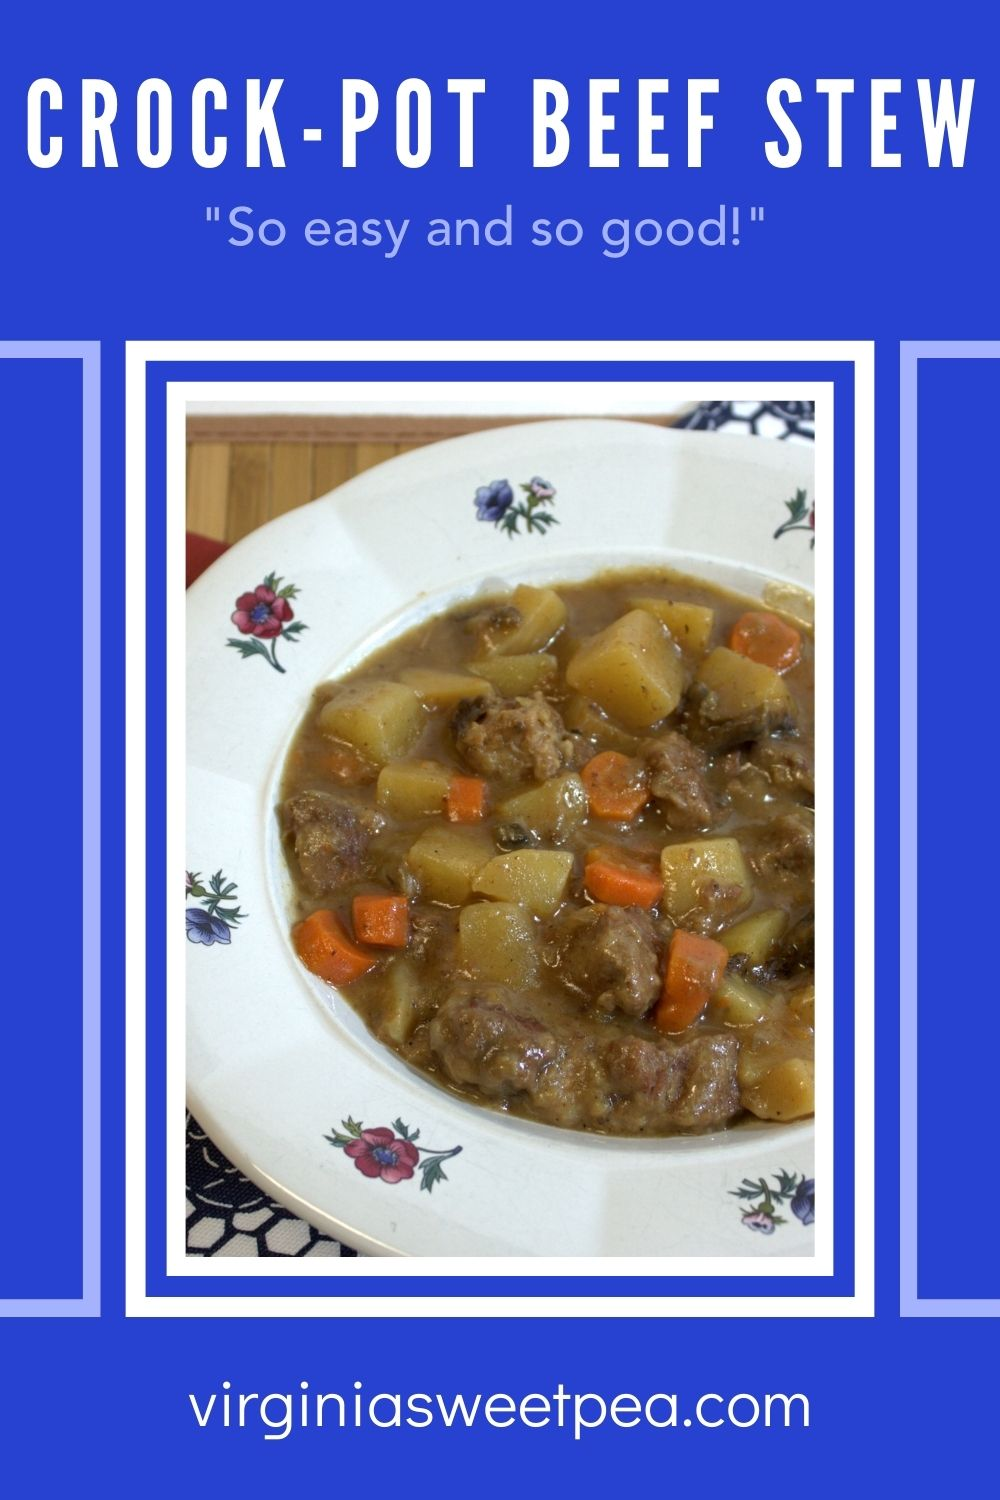 Using a crock-pot is a great way to make beef stew.  Prep the ingredients, pop them in the crock-pot, and when you get home from work, dinner is ready to serve.  Crock-pot beef stew is a regular winter dinner at my house. via @spaula